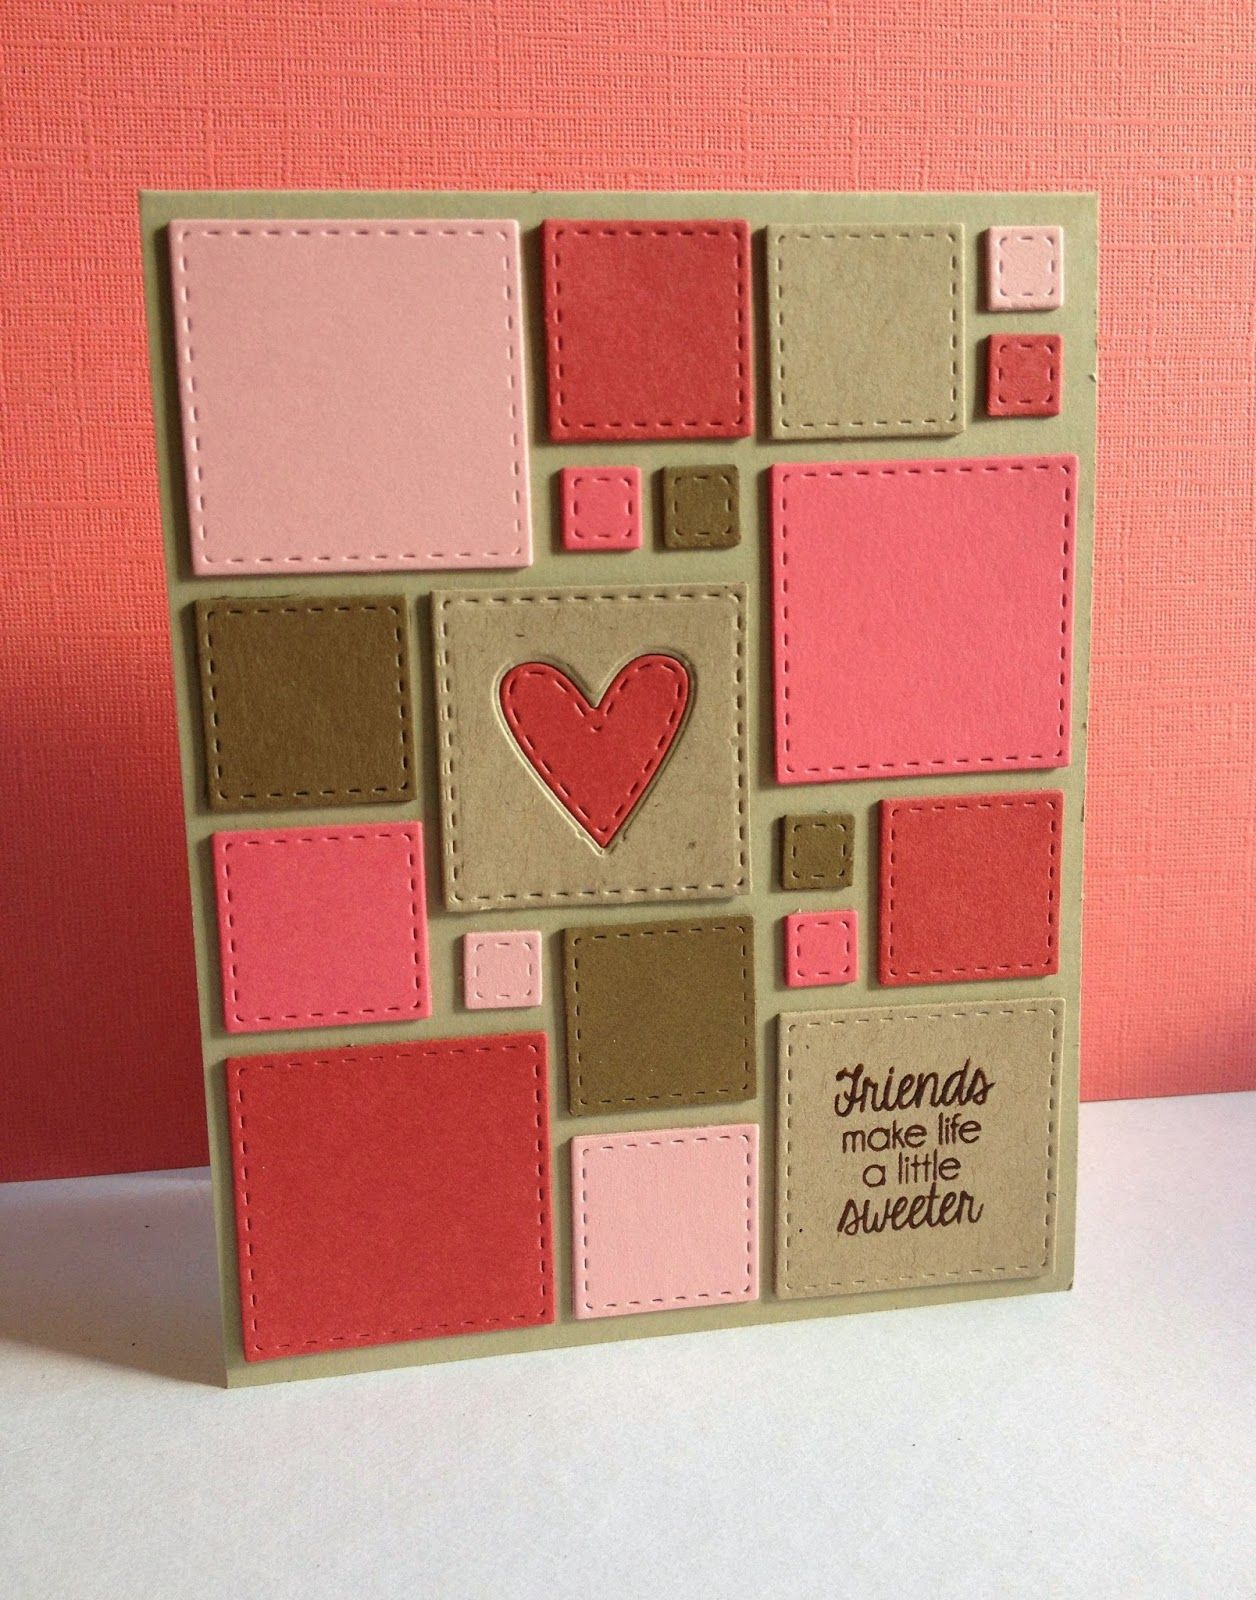 Simon Says Stamp STITCHED SQUARES Wafer Dies sssd111454 IN STITCHES at Simon Says STAMP!